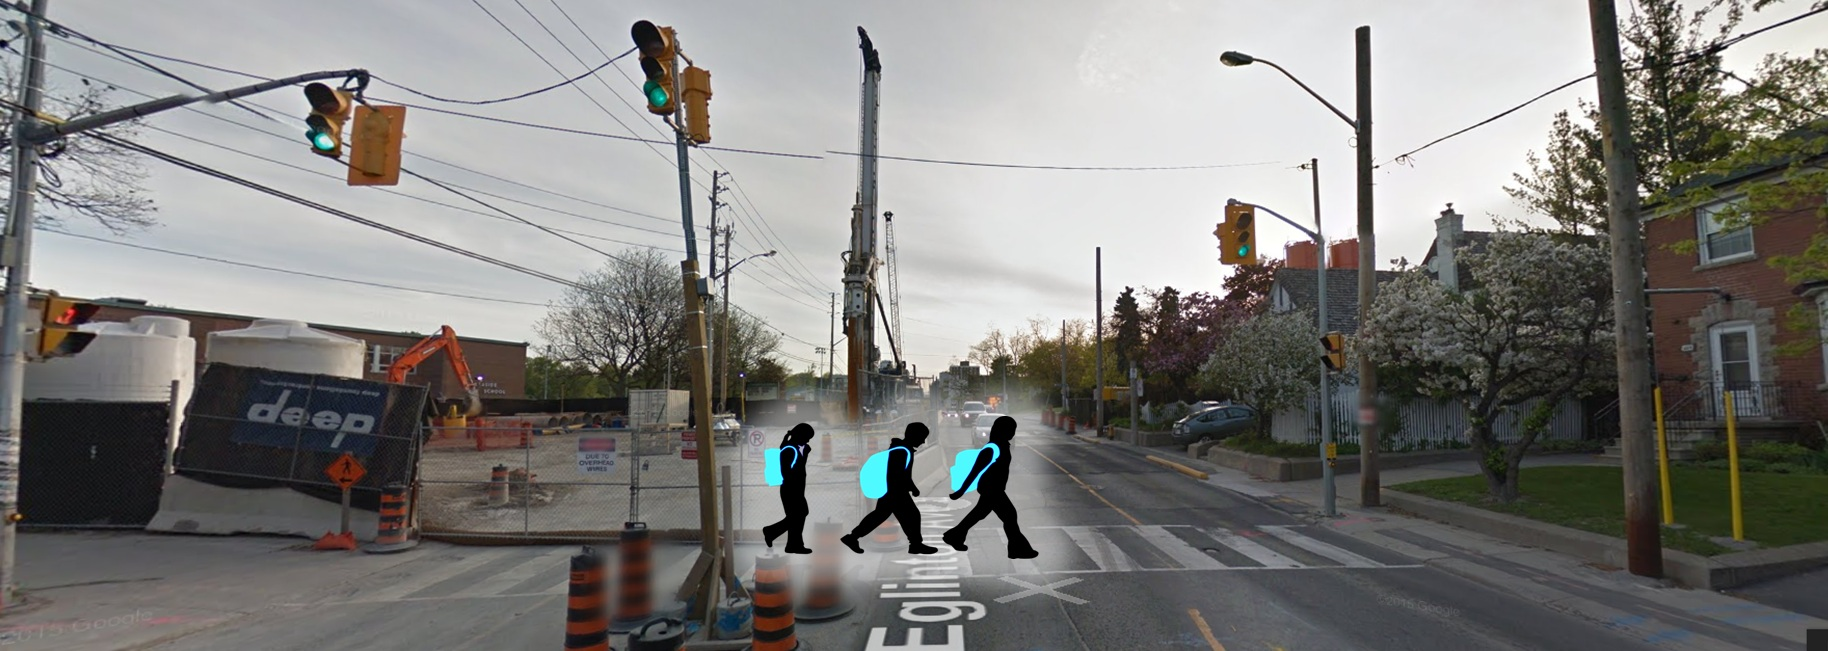 Pedestrian crossing image